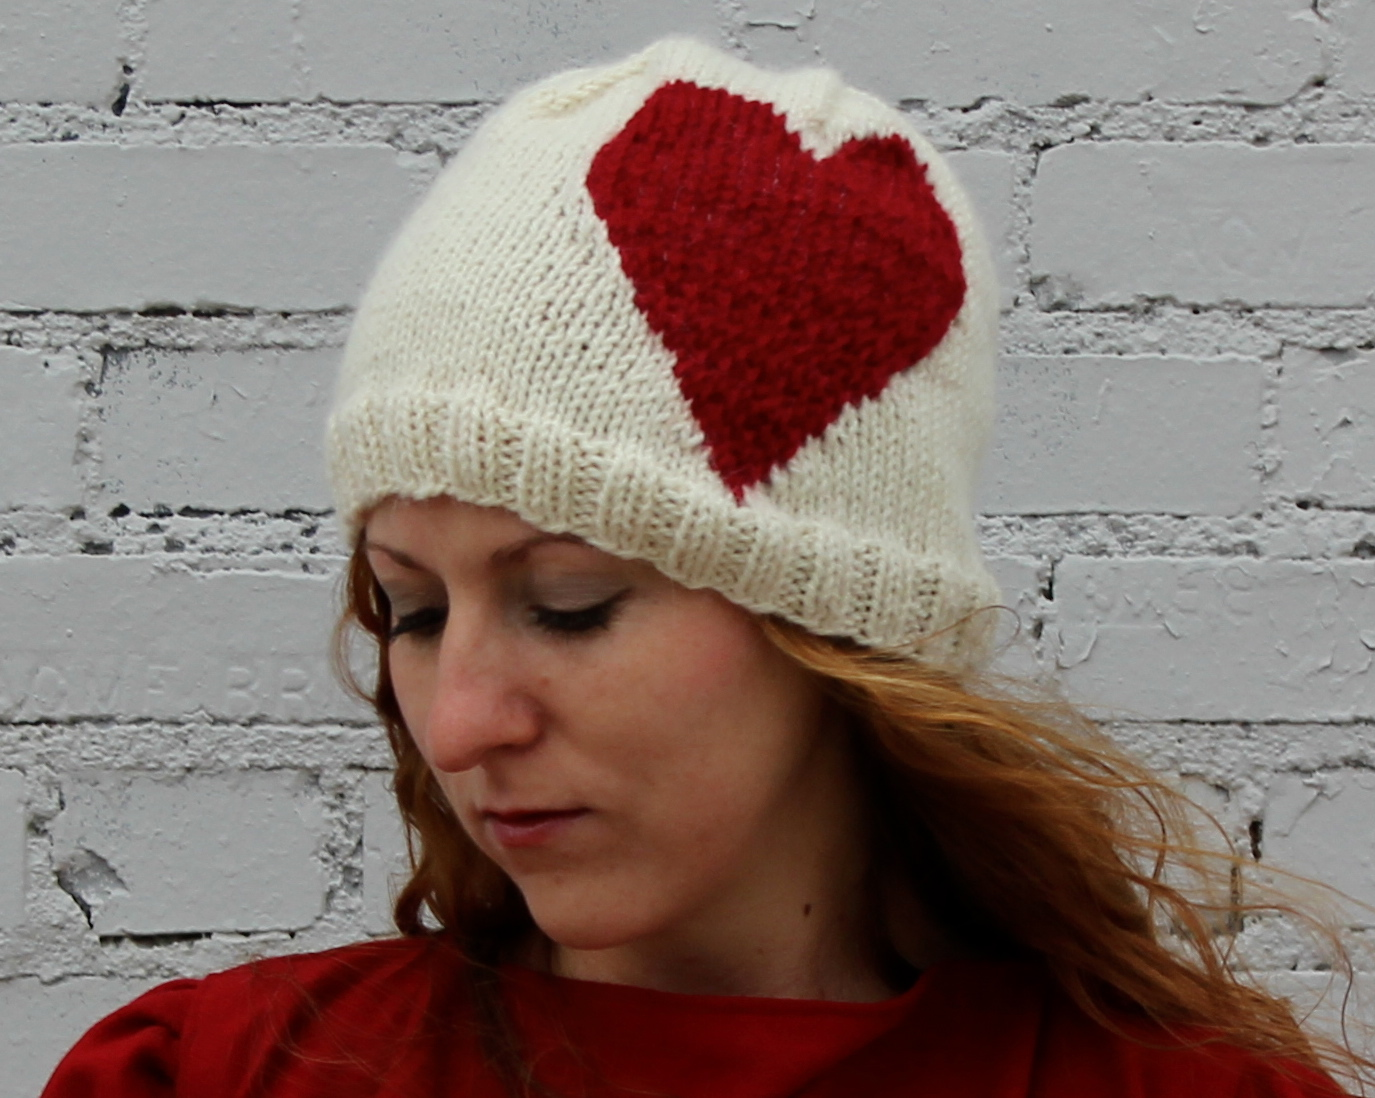 Big Heart Knitting Pattern : Bromeleighad: Knitting and Nature: Free Pattern Big ...